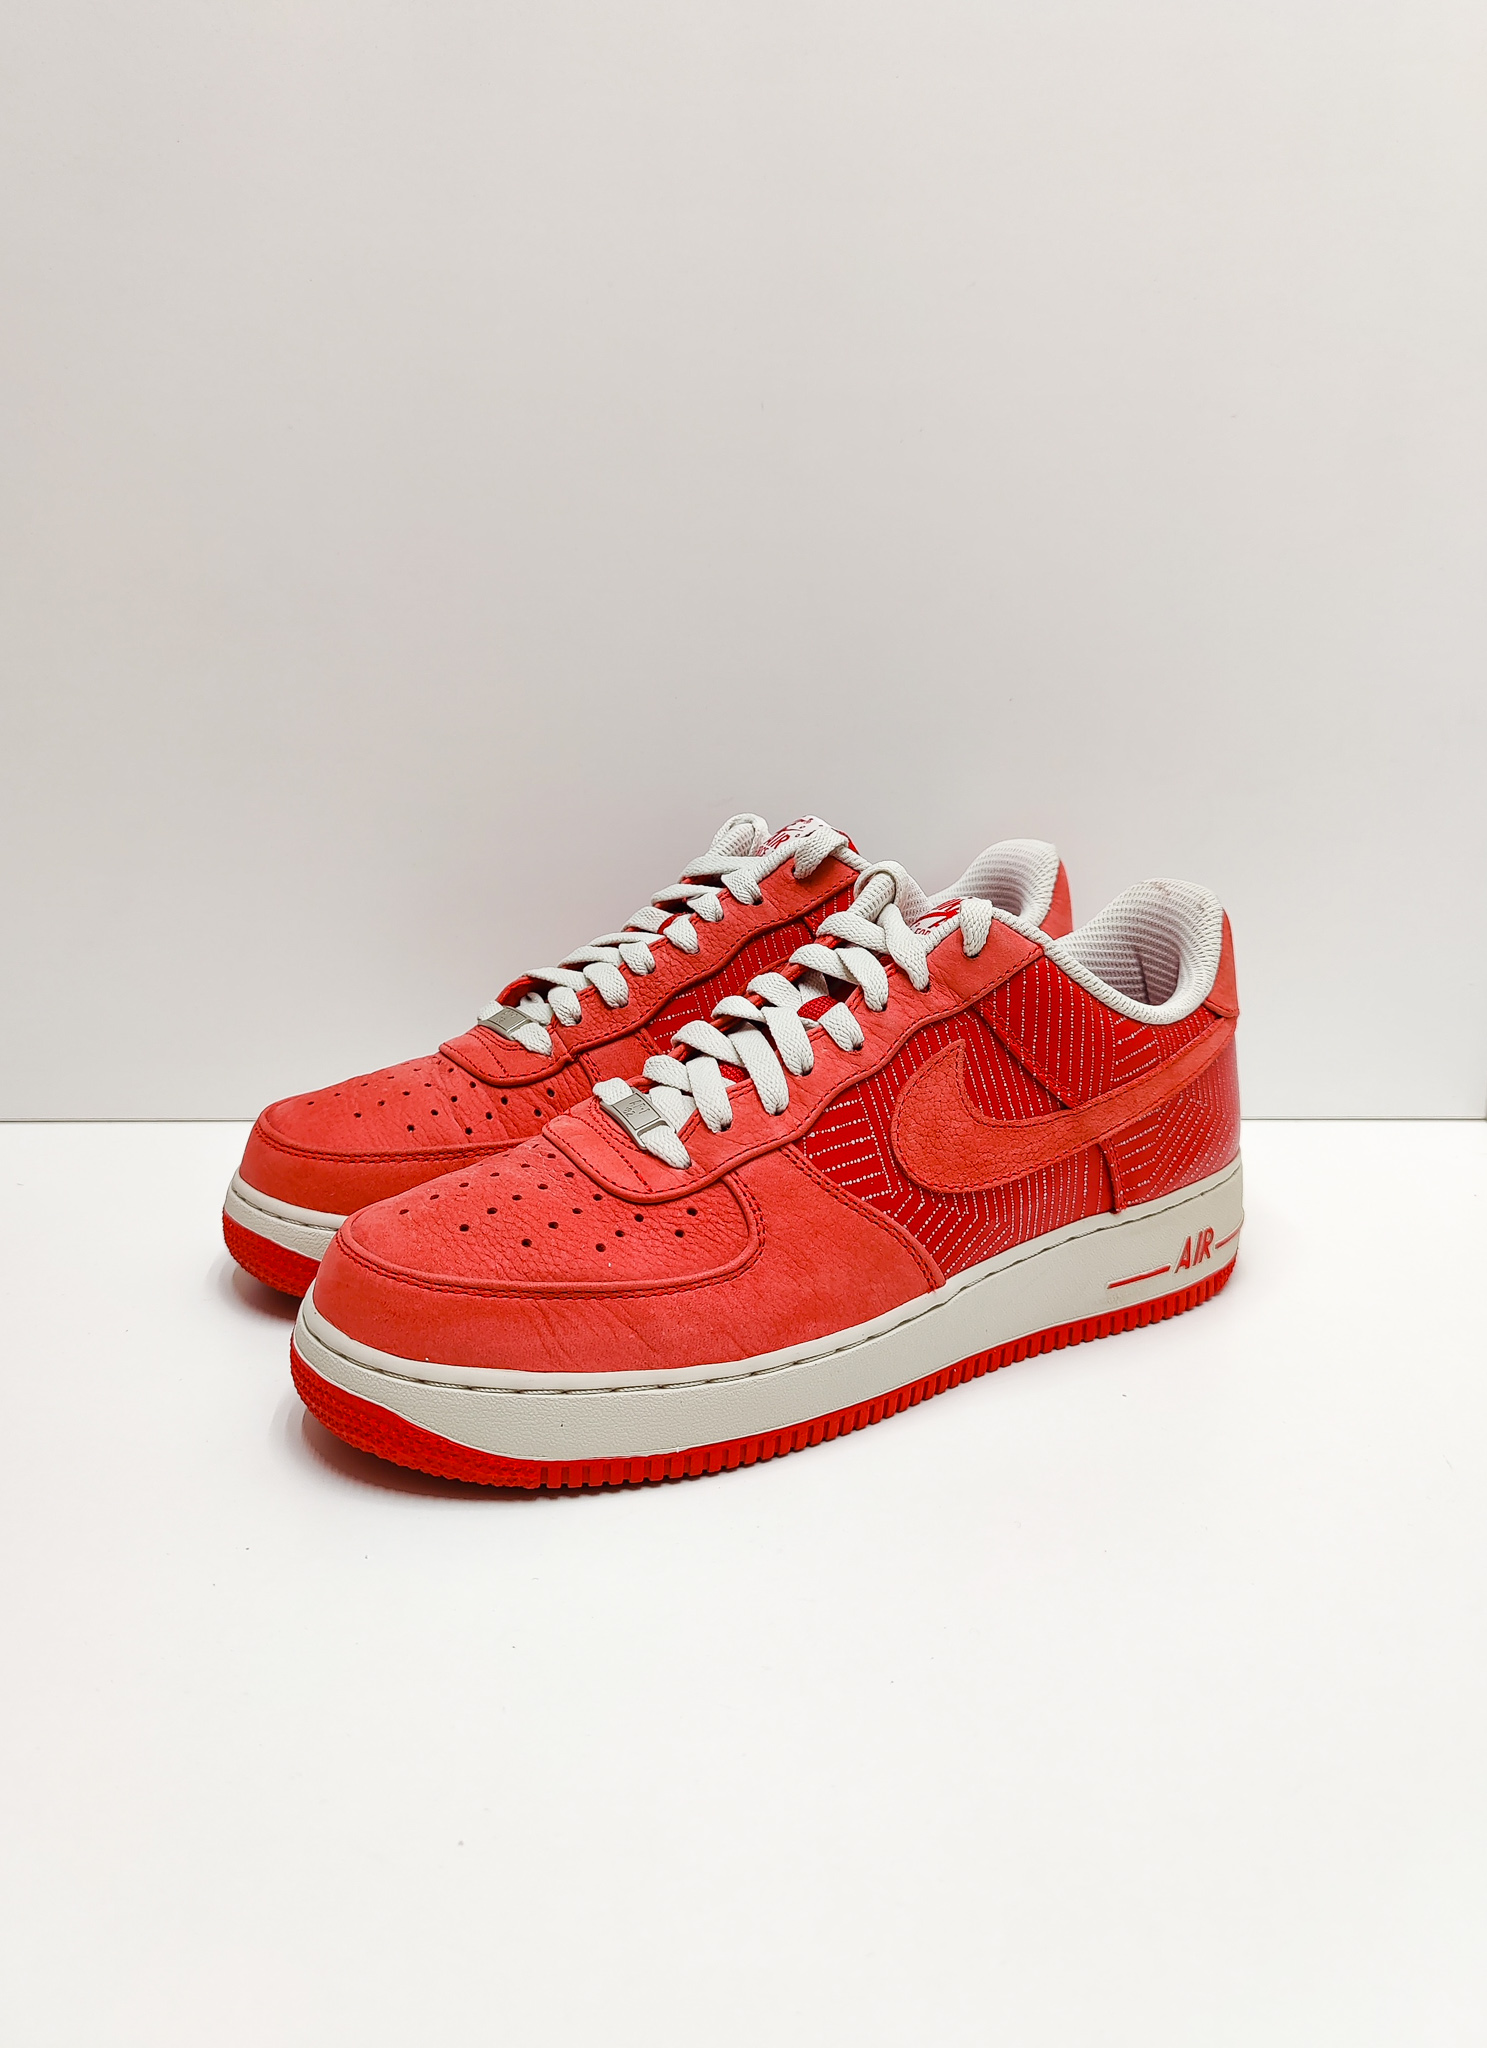 Nike Air Force 1 Low Premium Sport Red/Light Bone